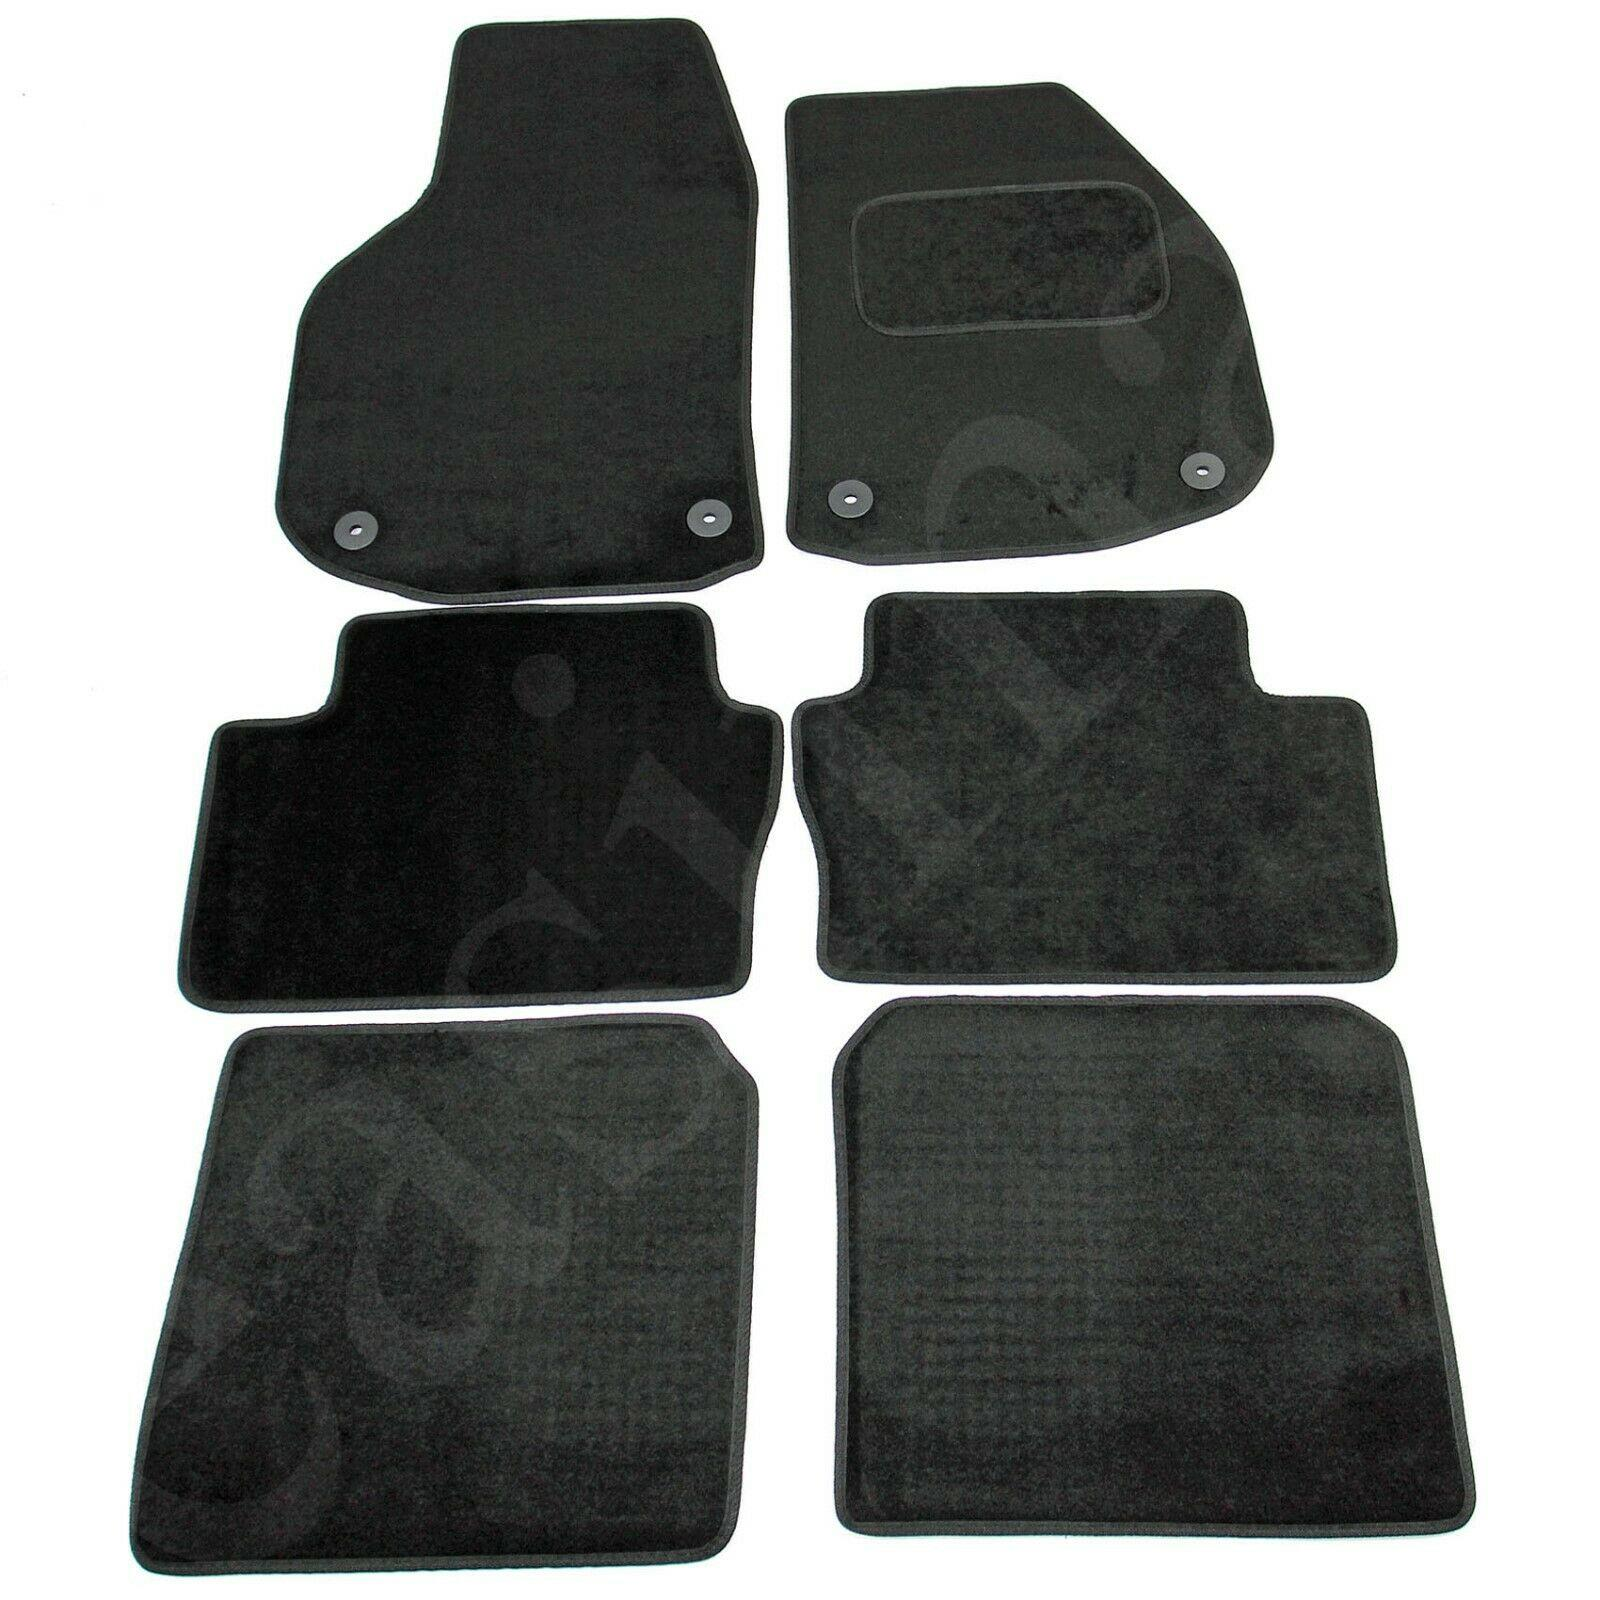 Tailor Fitted Car Mats for Vauxhall Zafira B 2006 to 2011